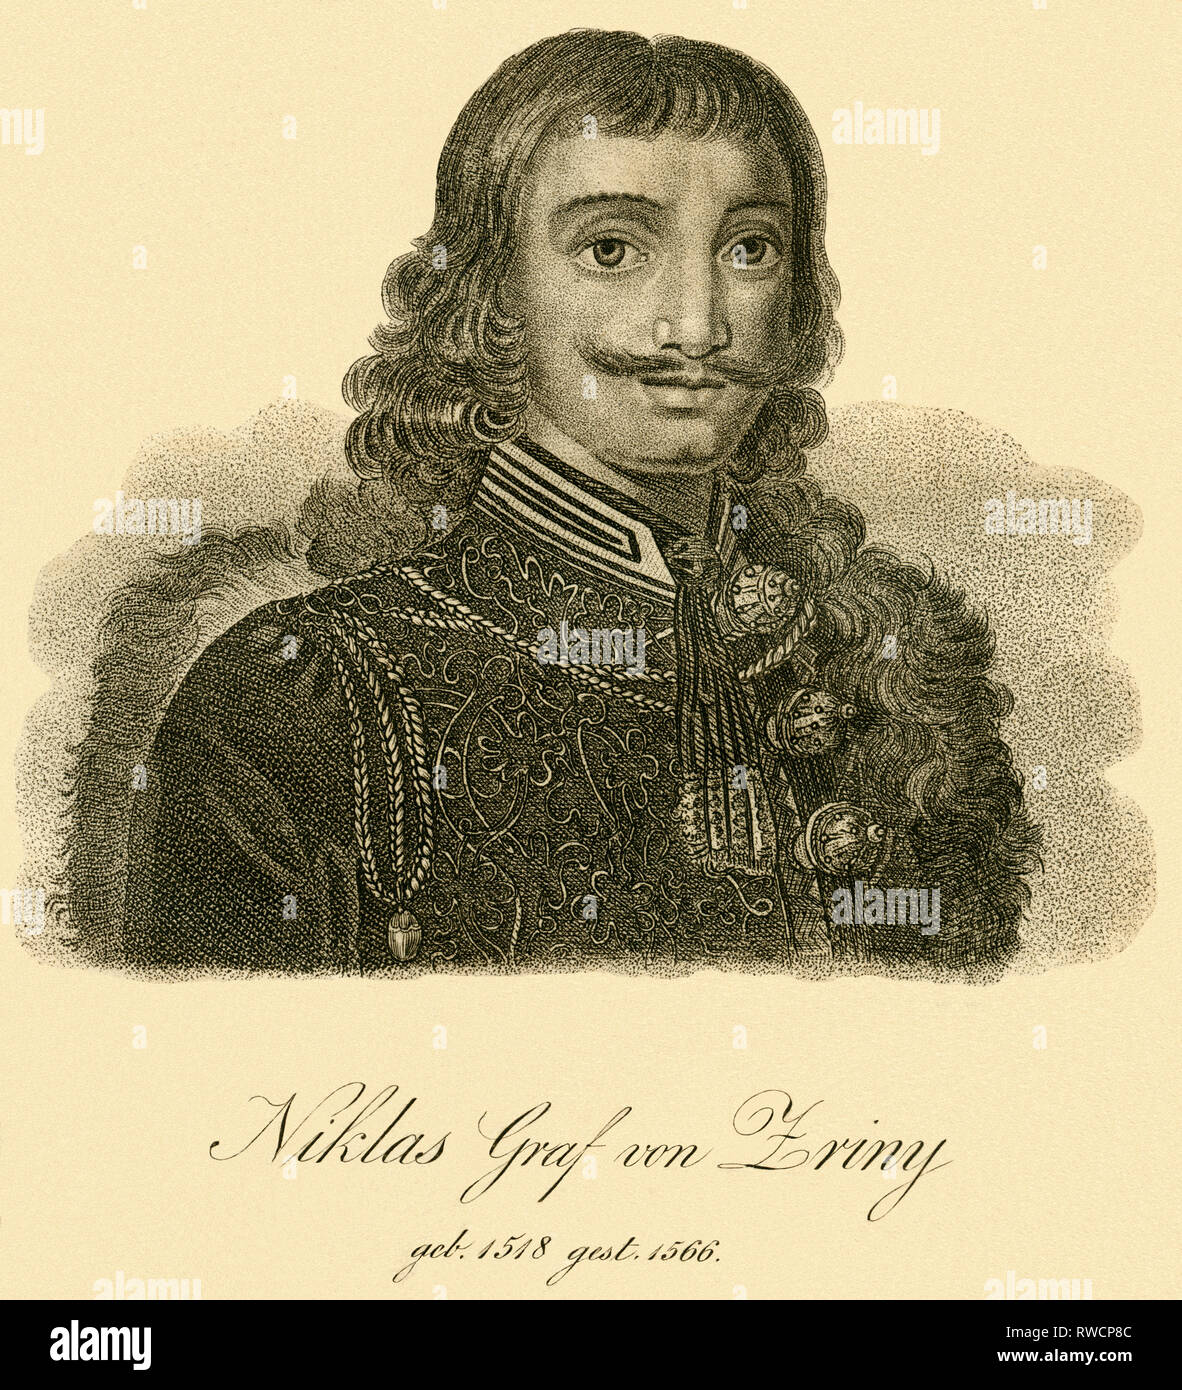 Niklas Count Zriny, Croatian nobility, strategist, copperplate engraving on handmade paper, around 1750., Artist's Copyright has not to be cleared - Stock Image